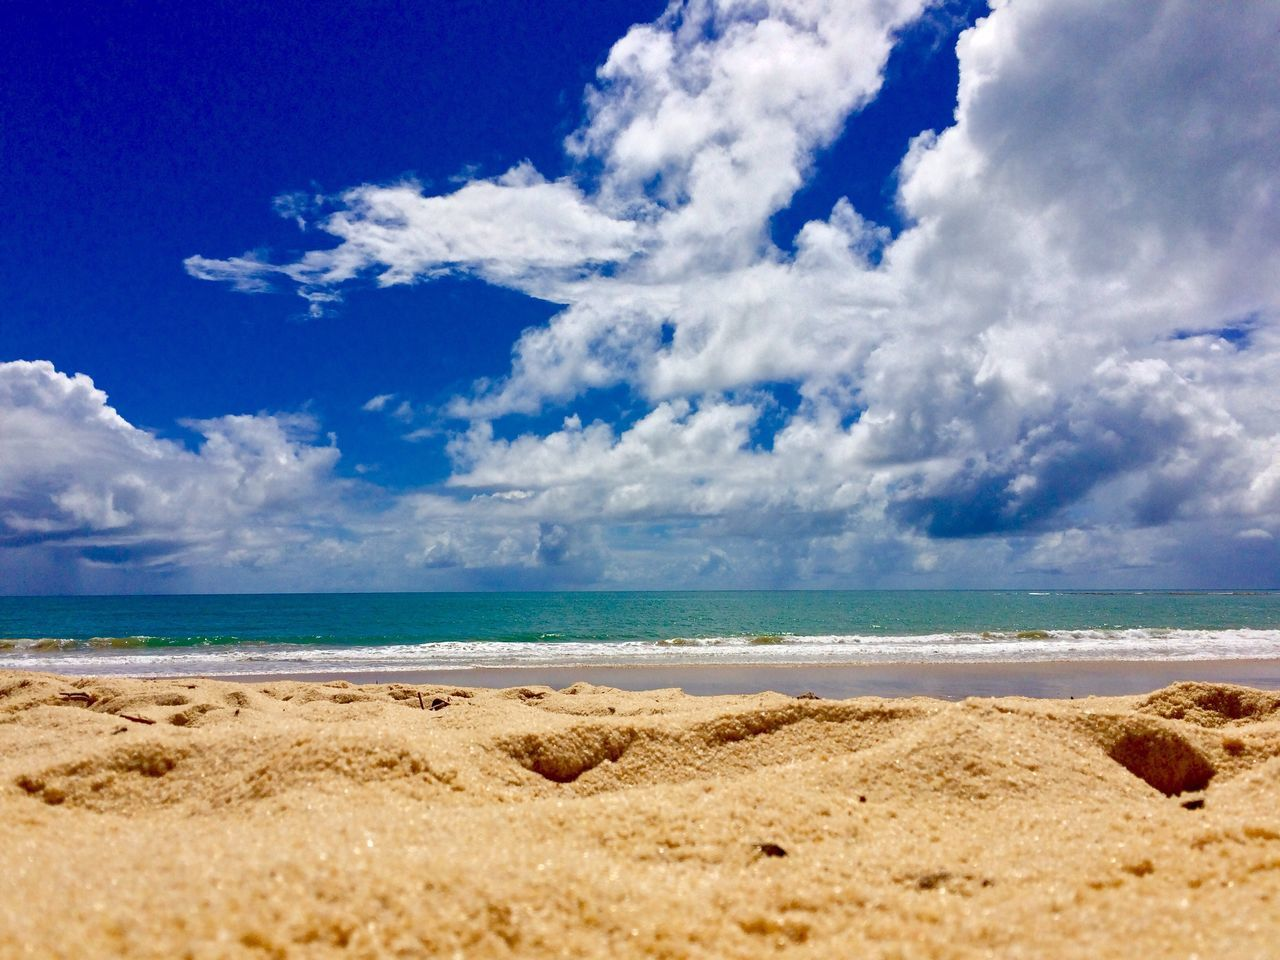 Iphonephotography IPhoneography Iphoneonly Sea Beach Blue Sky Cloud - Sky Horizon Over Water No People Scenics Nature Water Outdoors Beauty In Nature Tropical Climate Beauty In Nature Tranquility